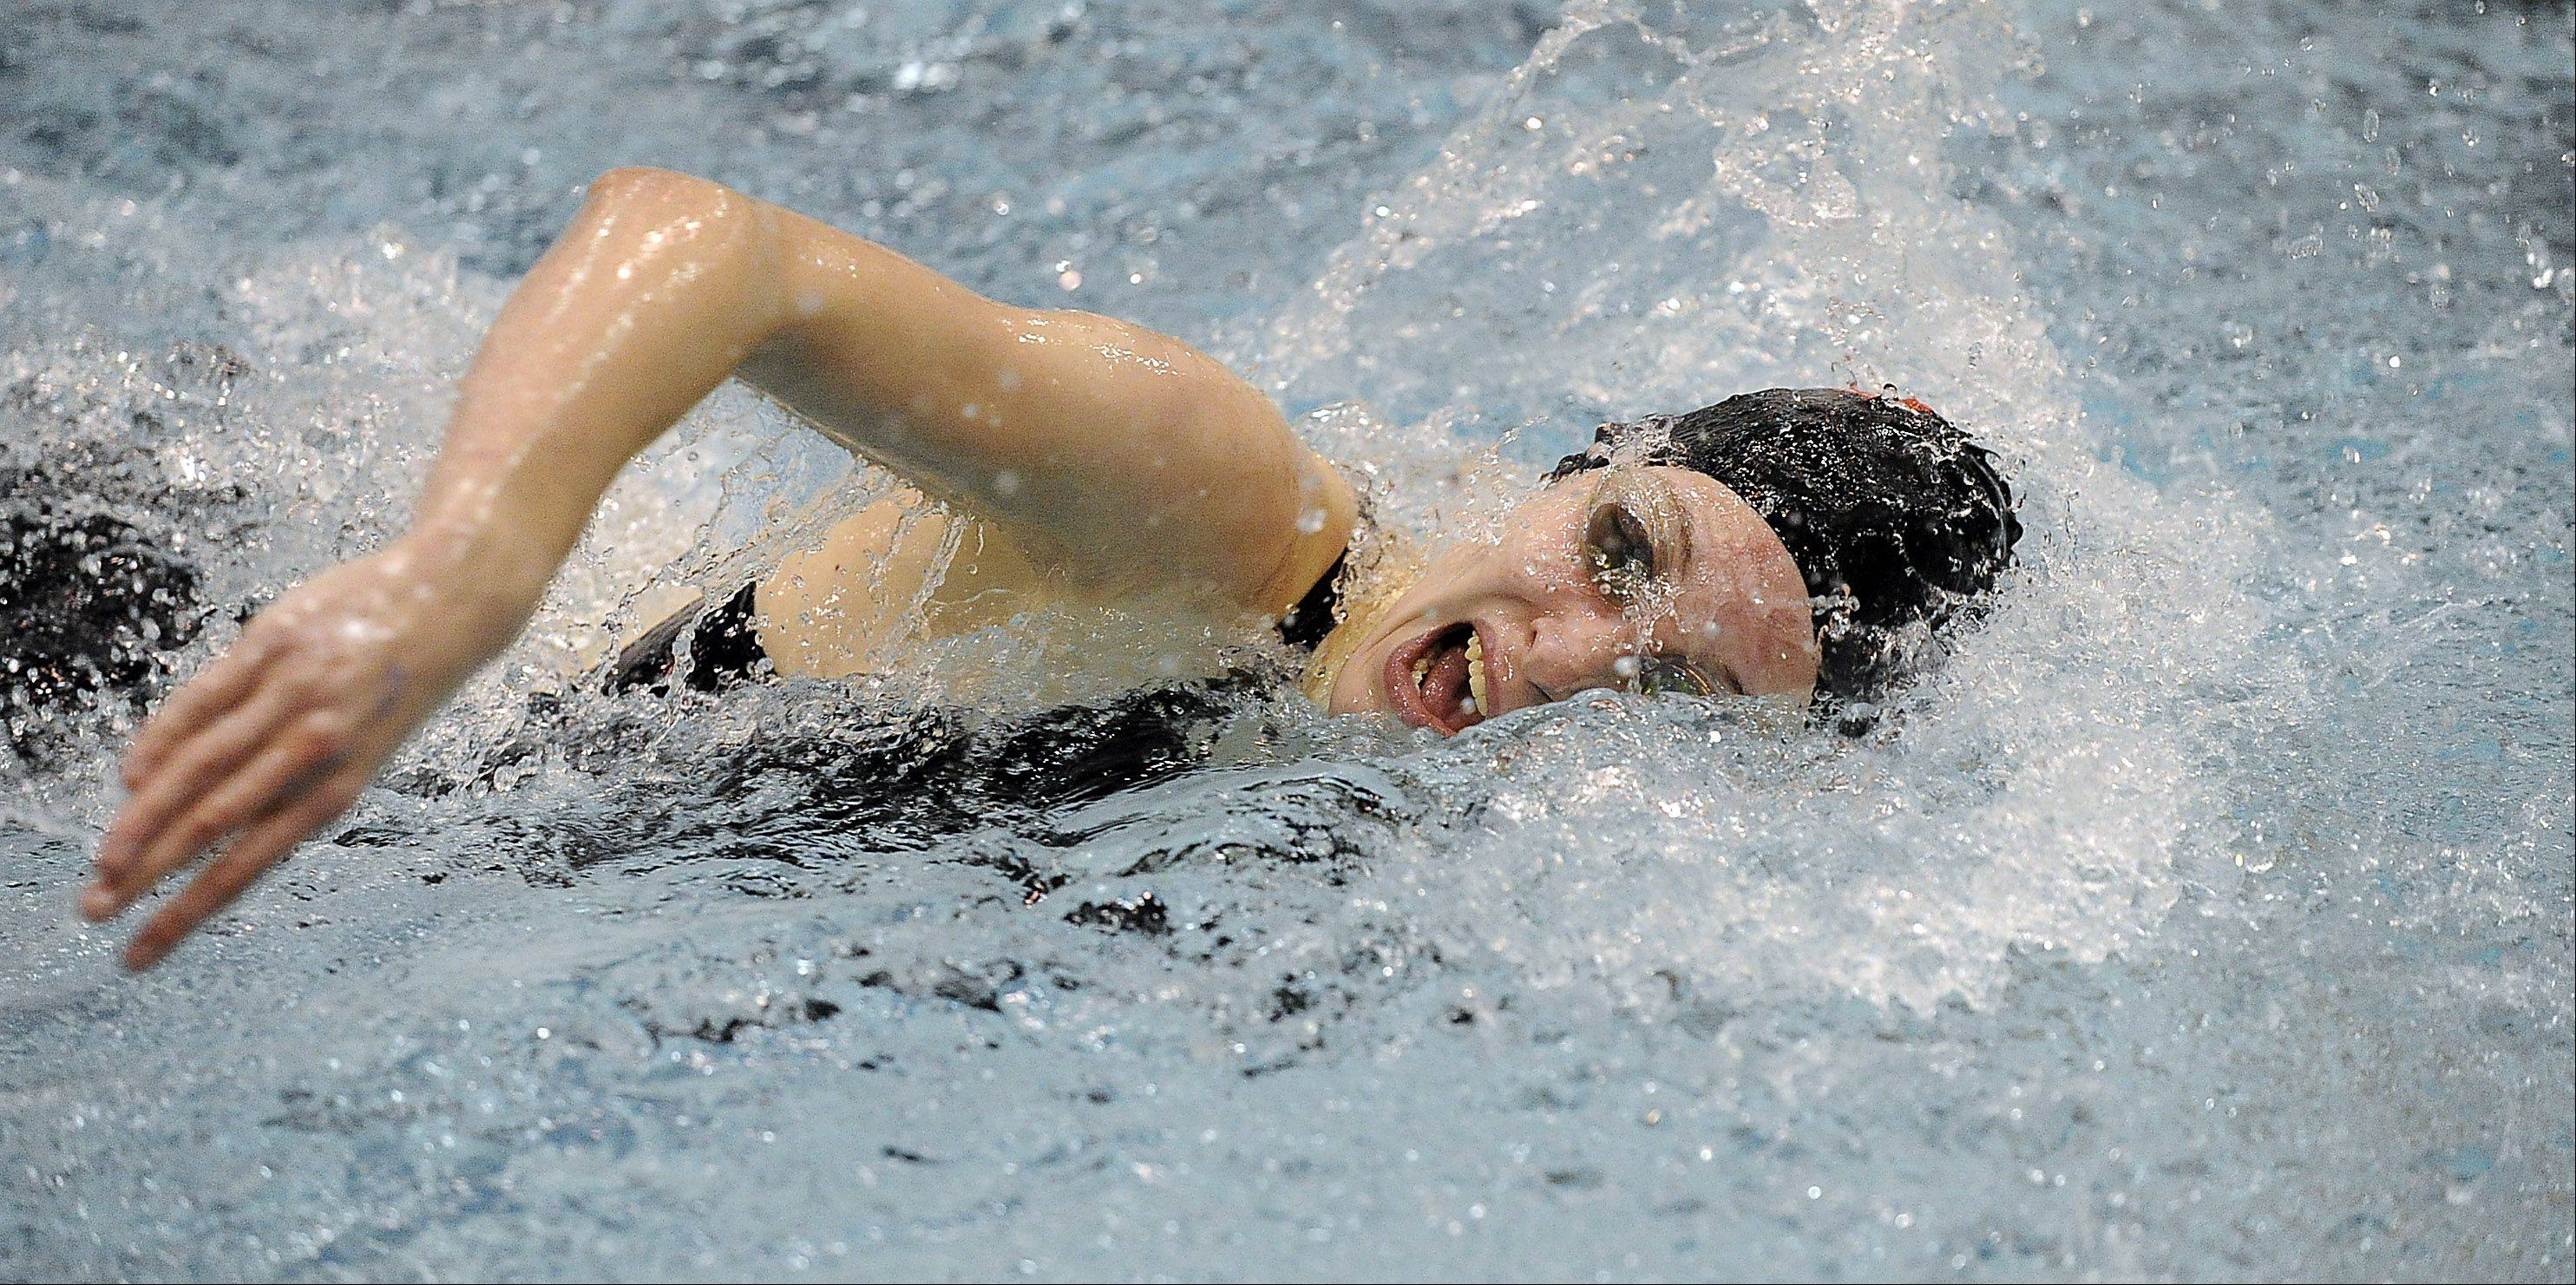 Kristin Anderson of Palatine High School races the 100-yard freestyle at the girls swimming state meet prelims at New Trier High School on Friday.